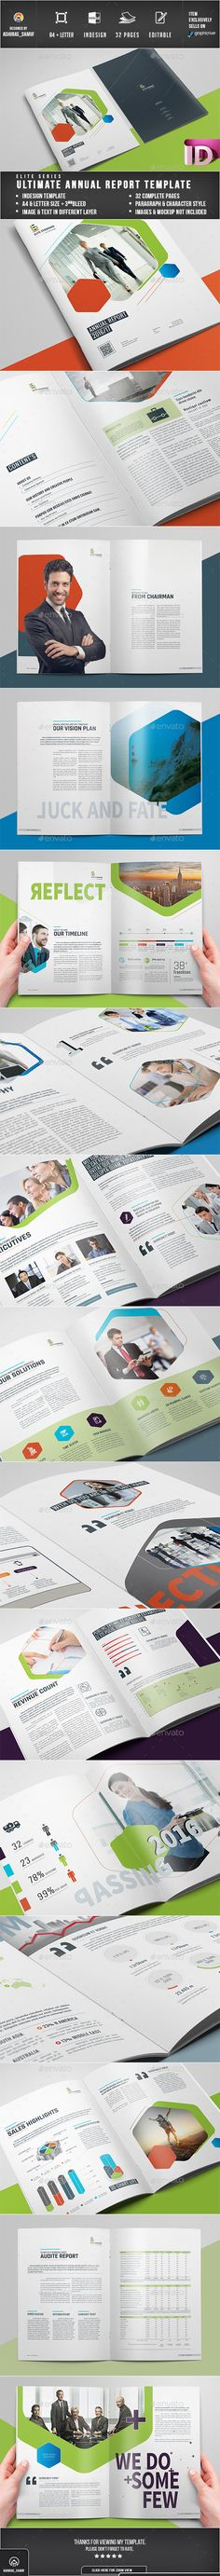 Annual Report - The Company Fonts-logos-icons Pinterest - business annual report template